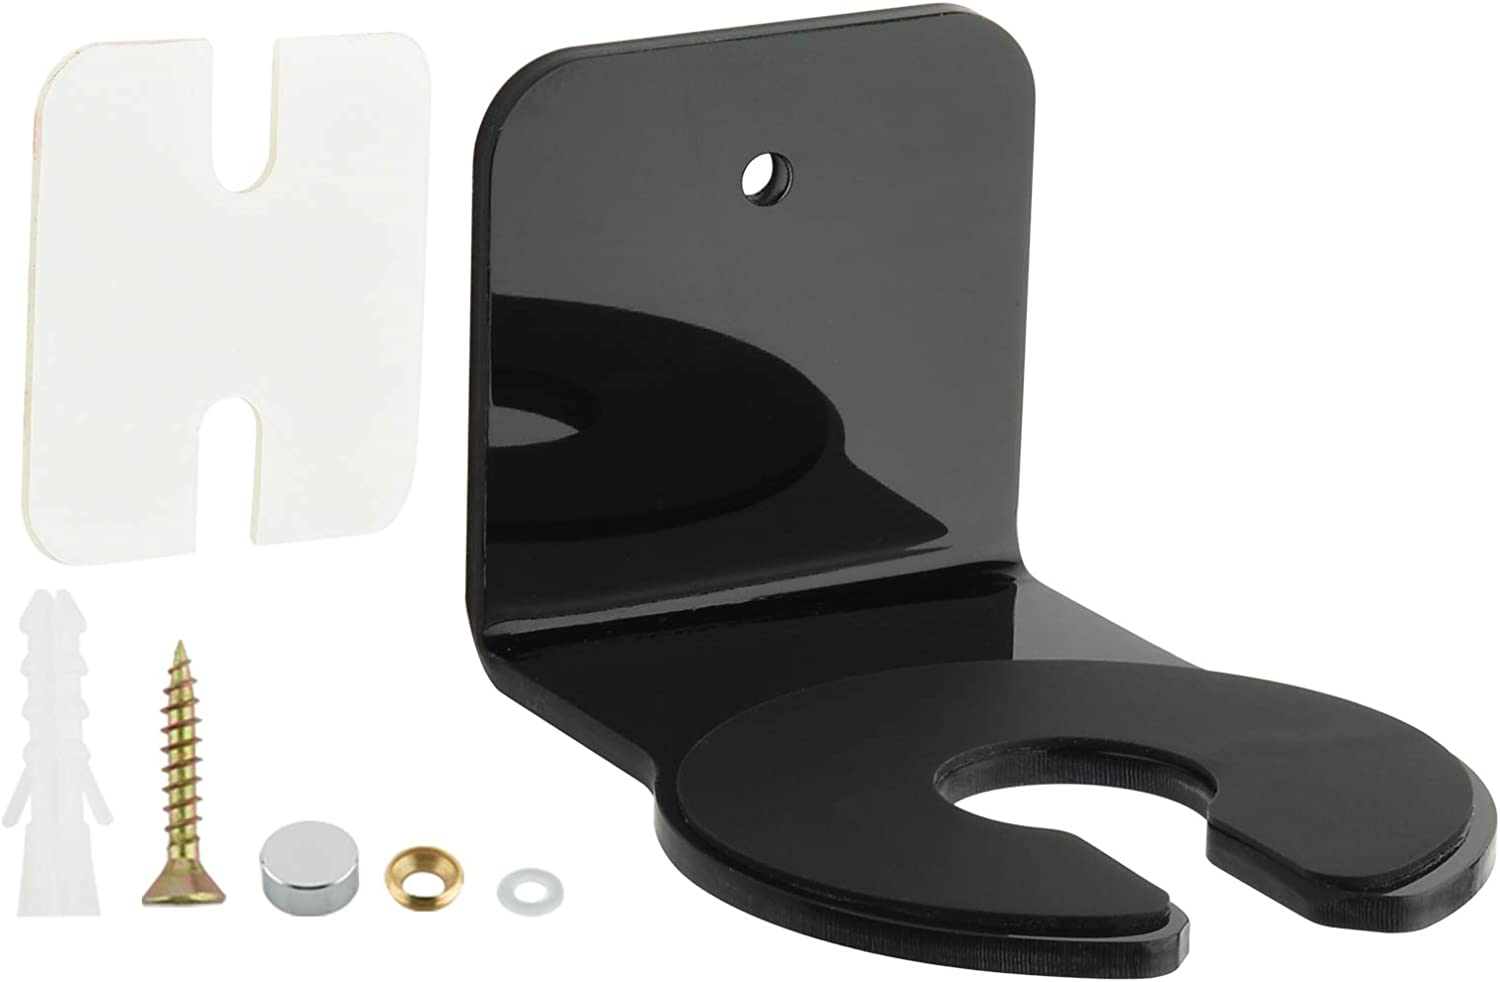 Adhesive Wall Mount Popular brand in the world Wine Holder Glass Shower CupHold Washington Mall